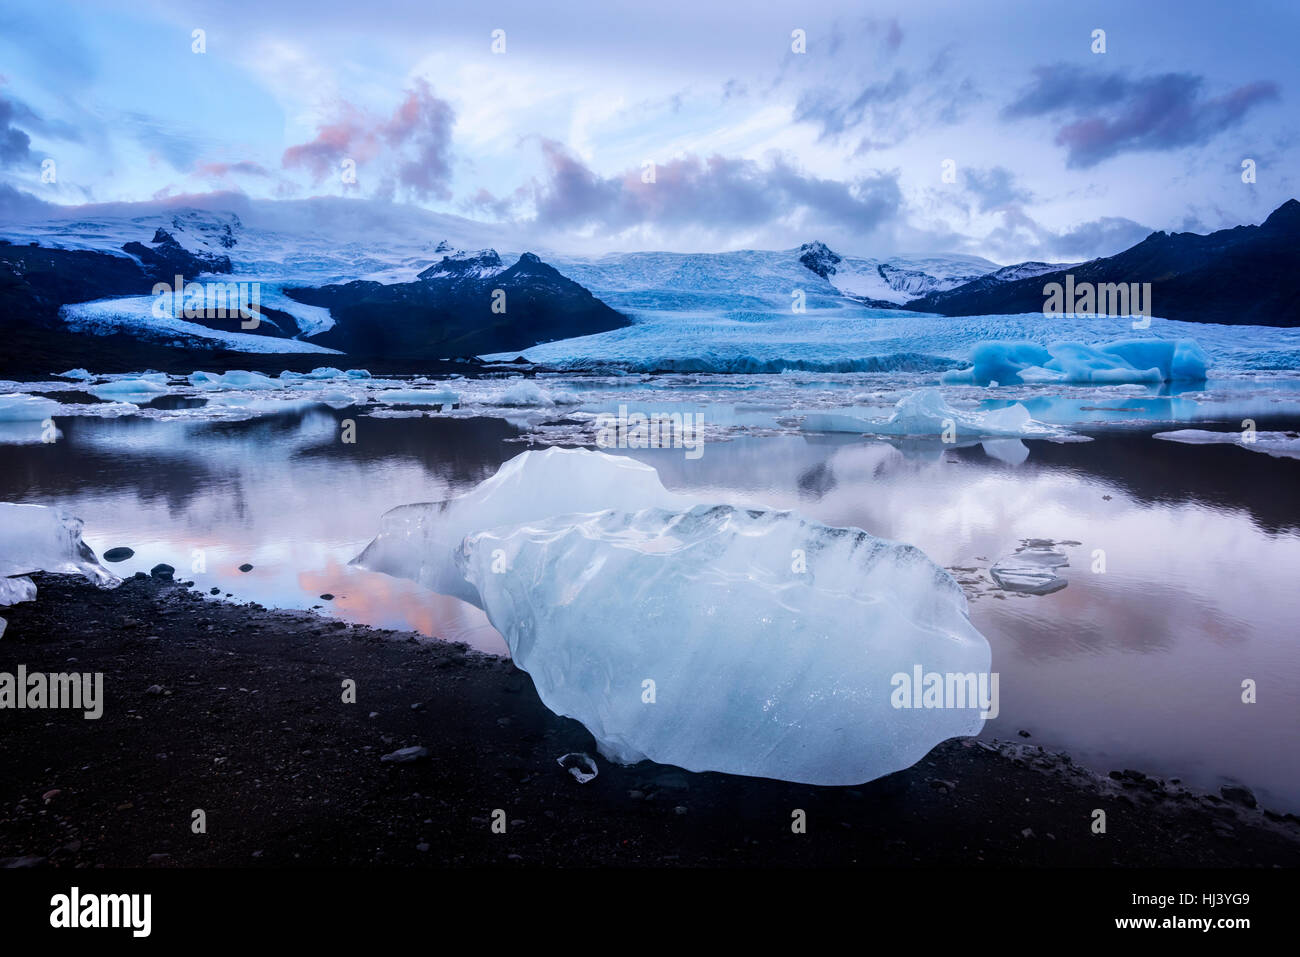 Icebergs along the shore of Jokulsarlon glacial lagoon during a blue overcast day rest motionless while framed by Stock Photo